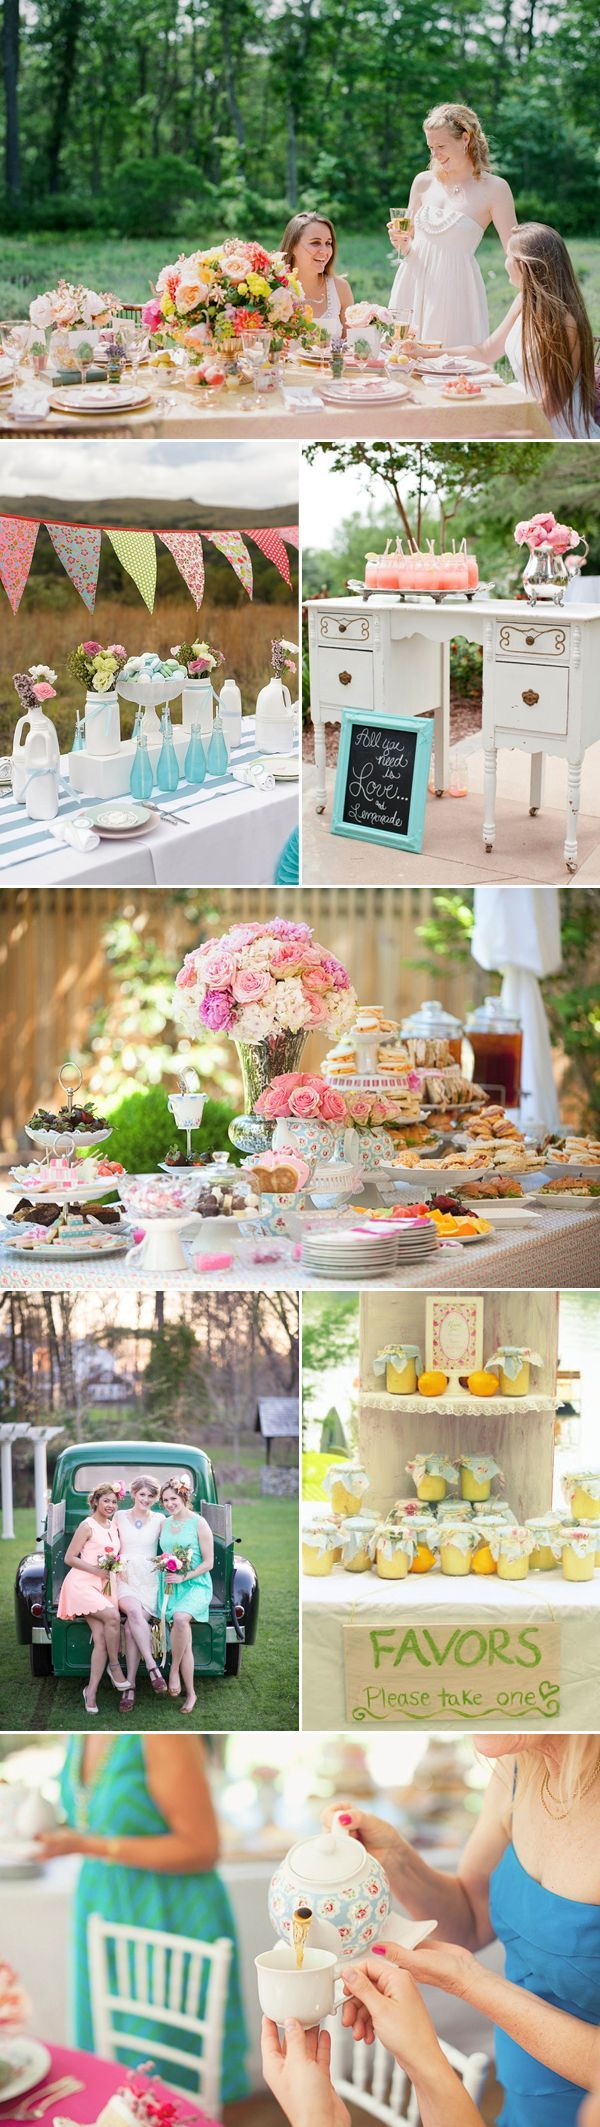 Tea party - I like the teapots as flower vases and the china used as serving pieces on the second full width photo